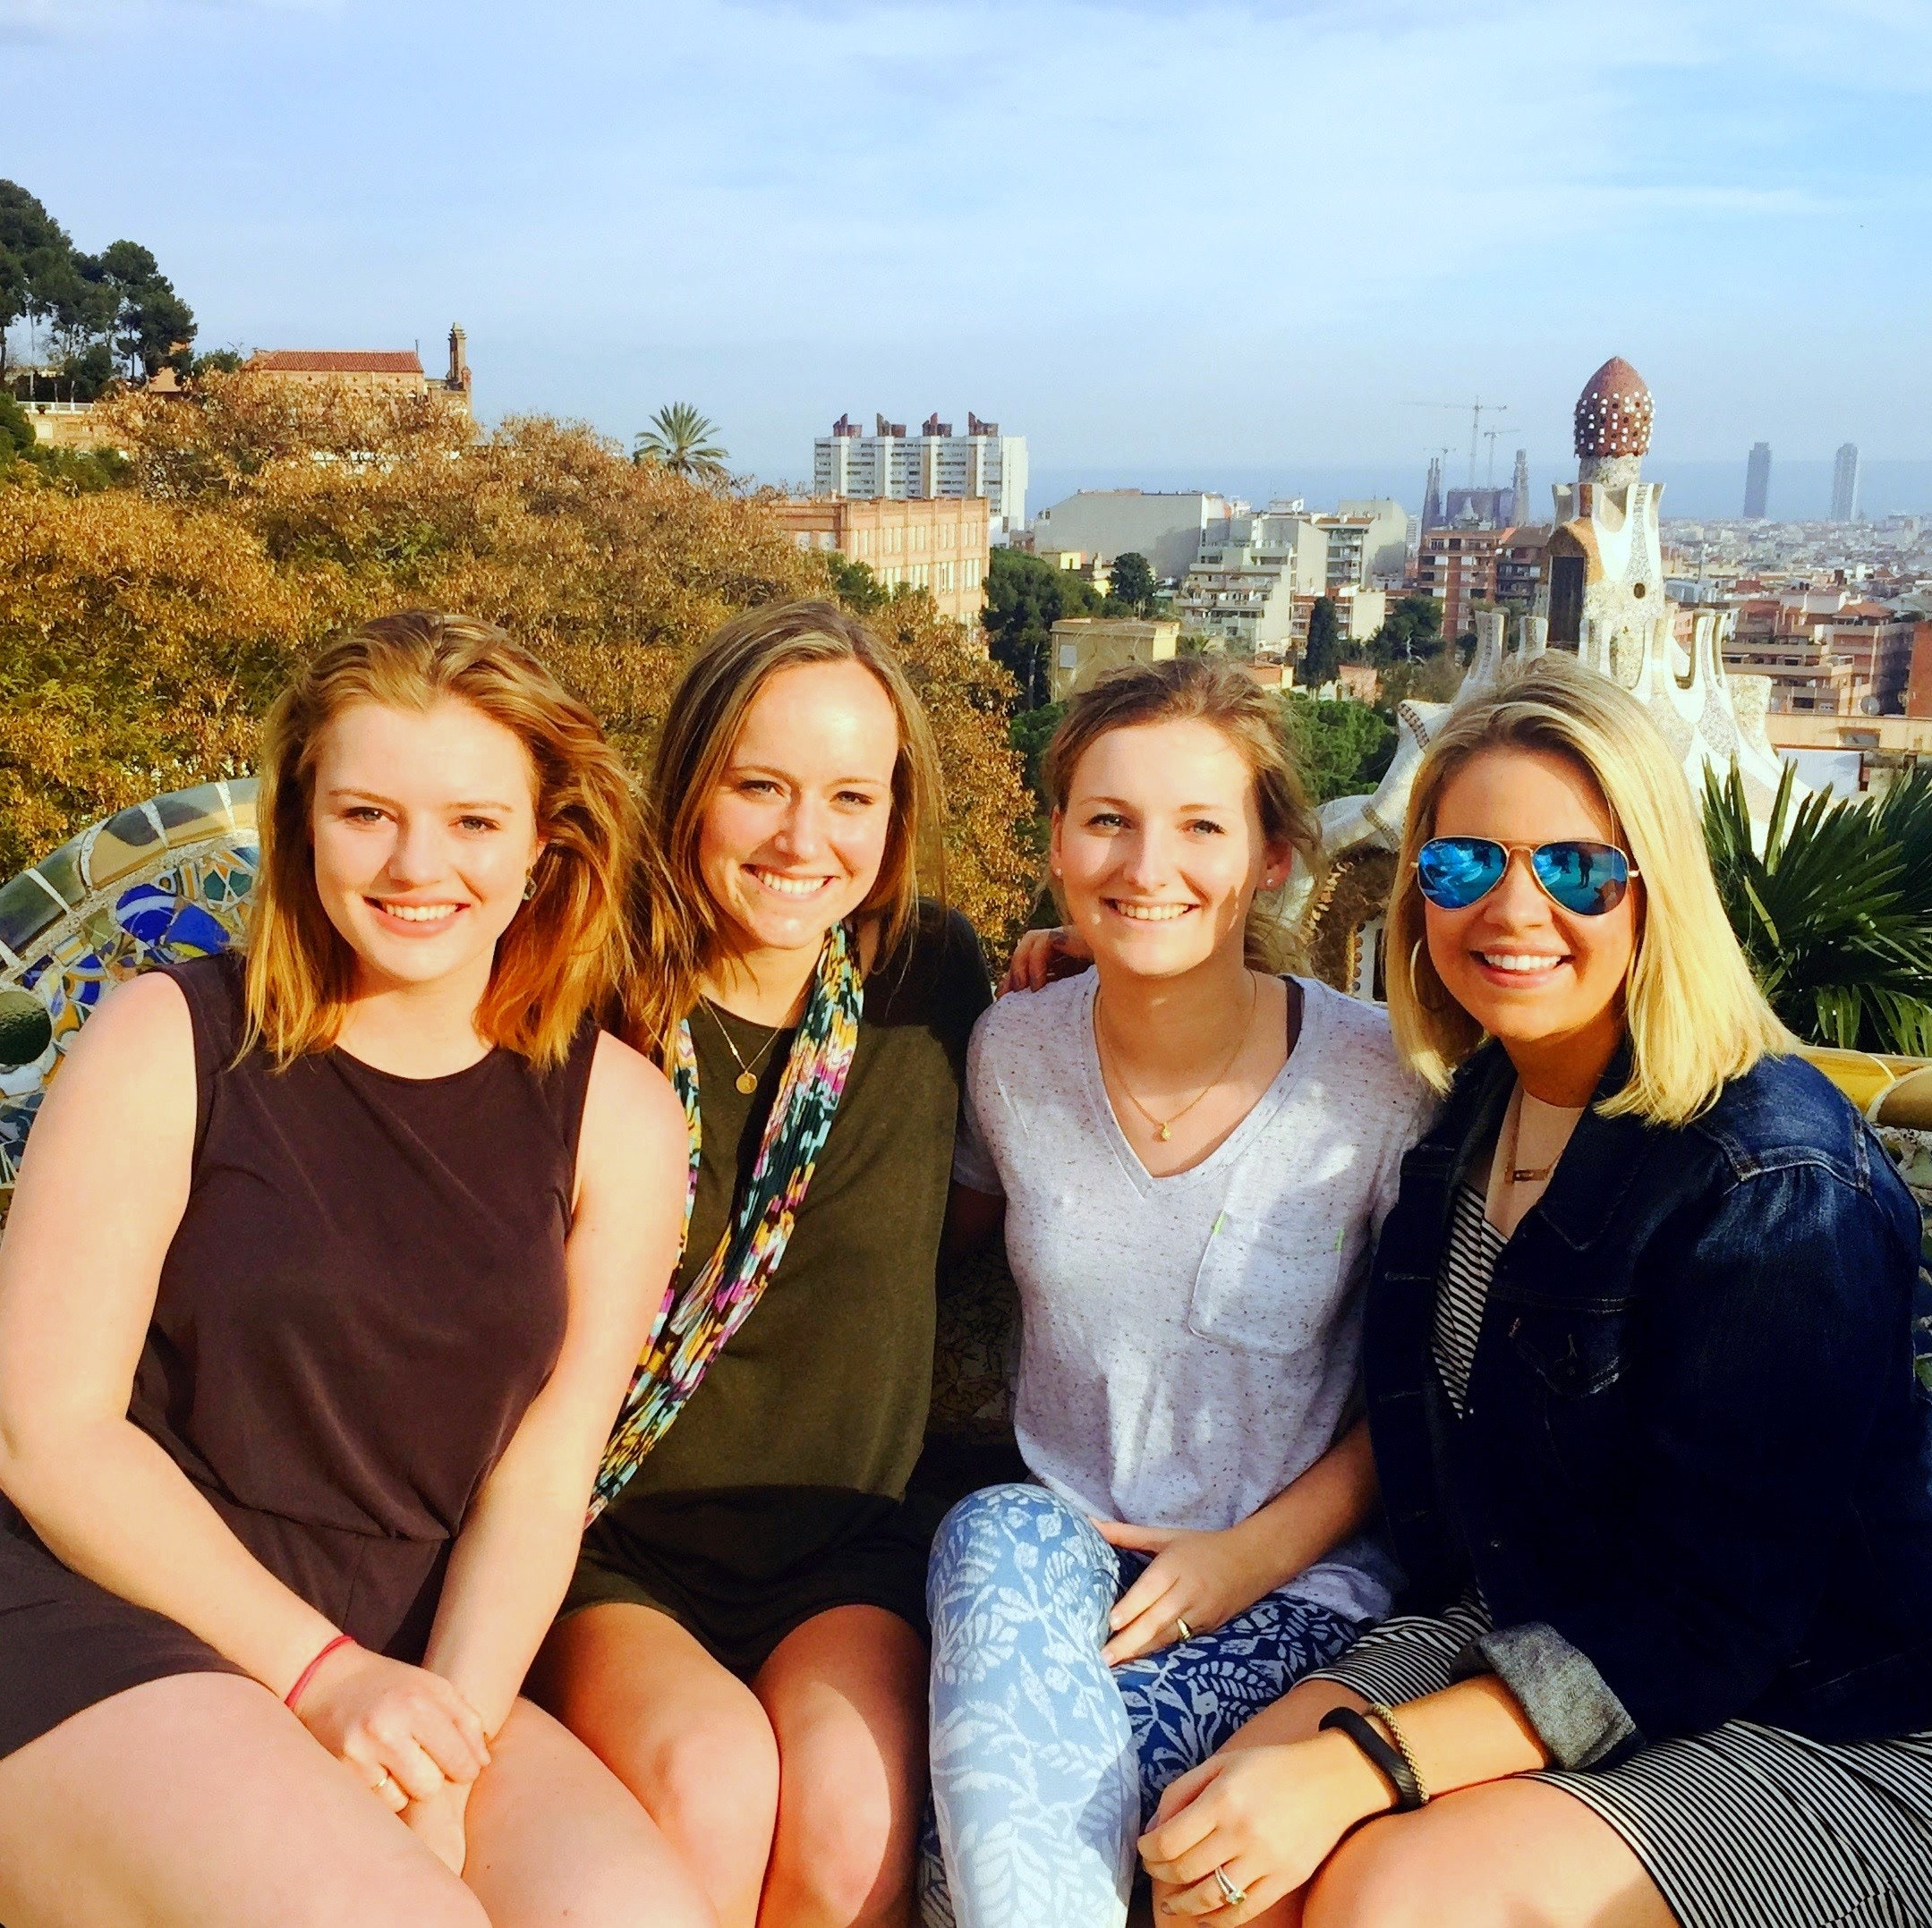 At Parque Guell in Barcelona